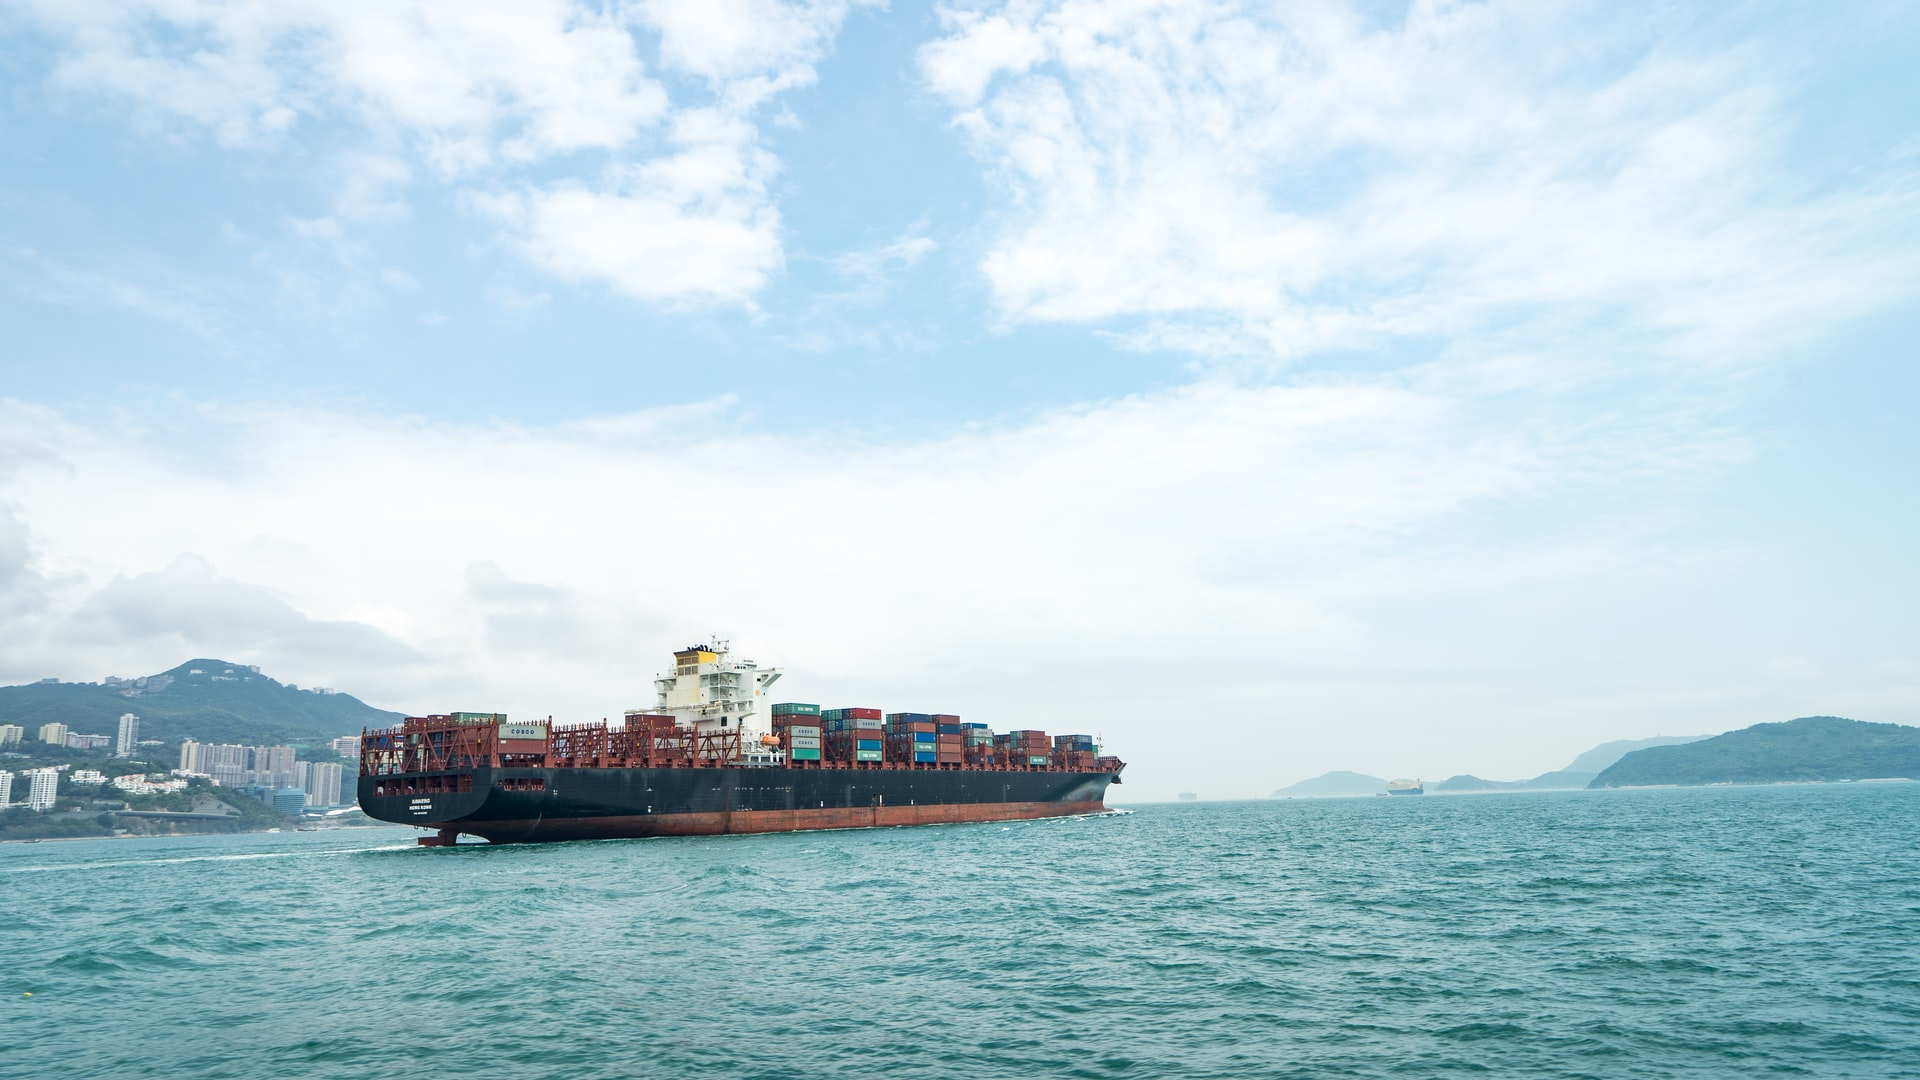 Digital rates and shipping companies: the sea revolution